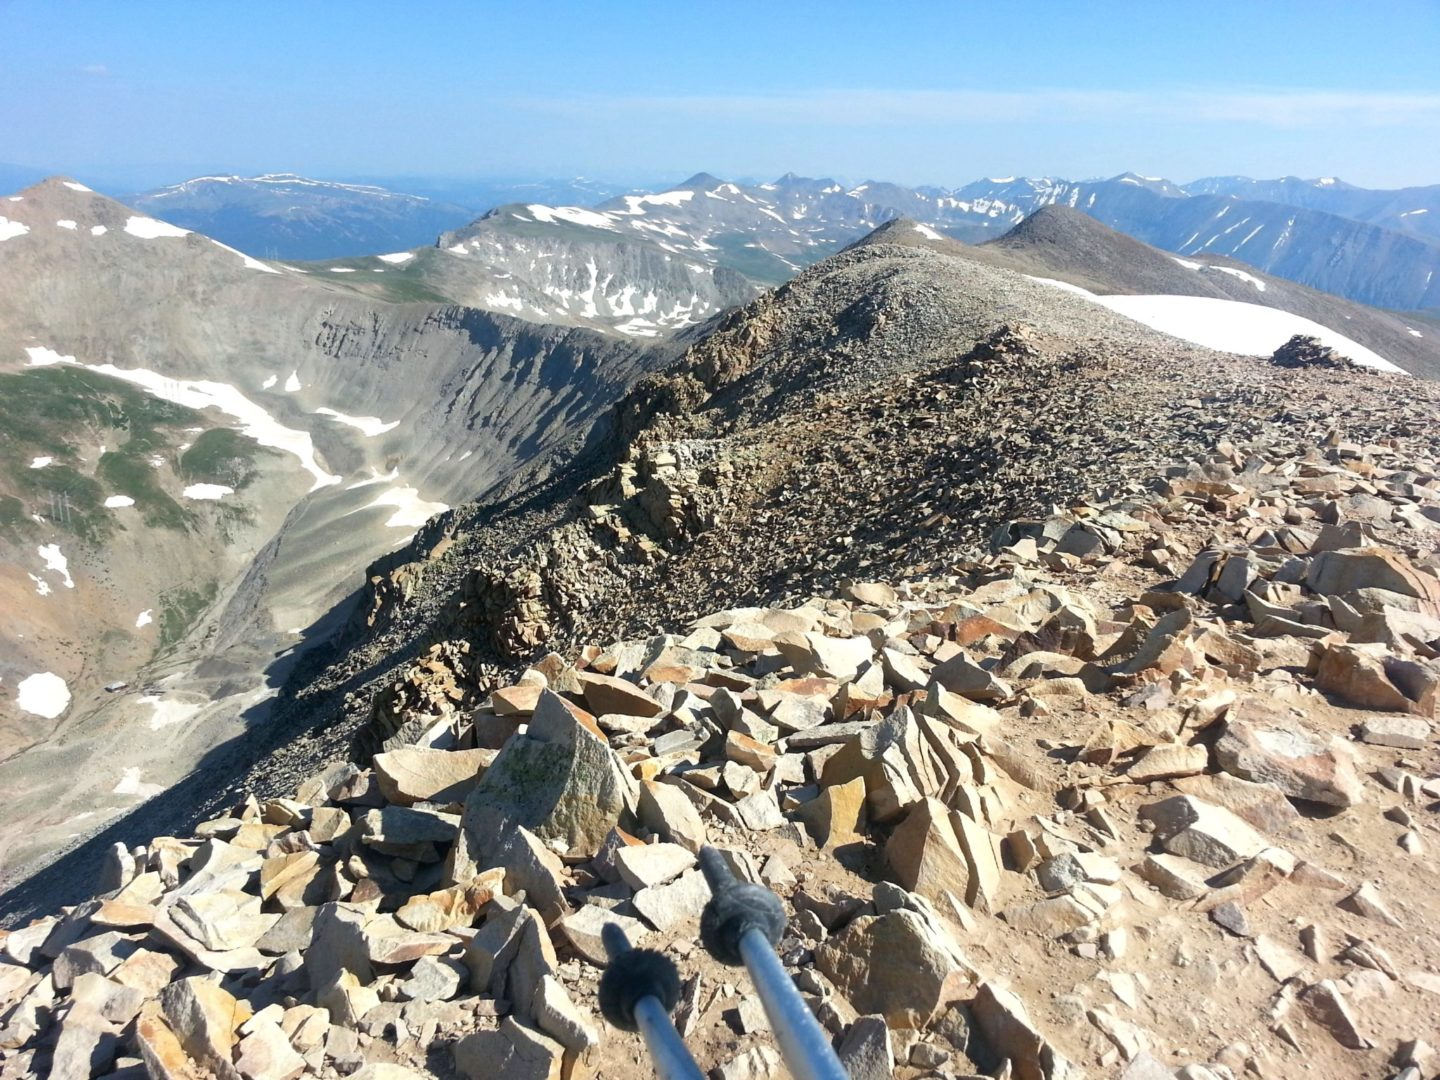 Summit ridge - Dyer Mountain on the left. On the right Quandary Peak and Northstar Mountain with Bross, Democrat, Lincoln and Longs in the far right background